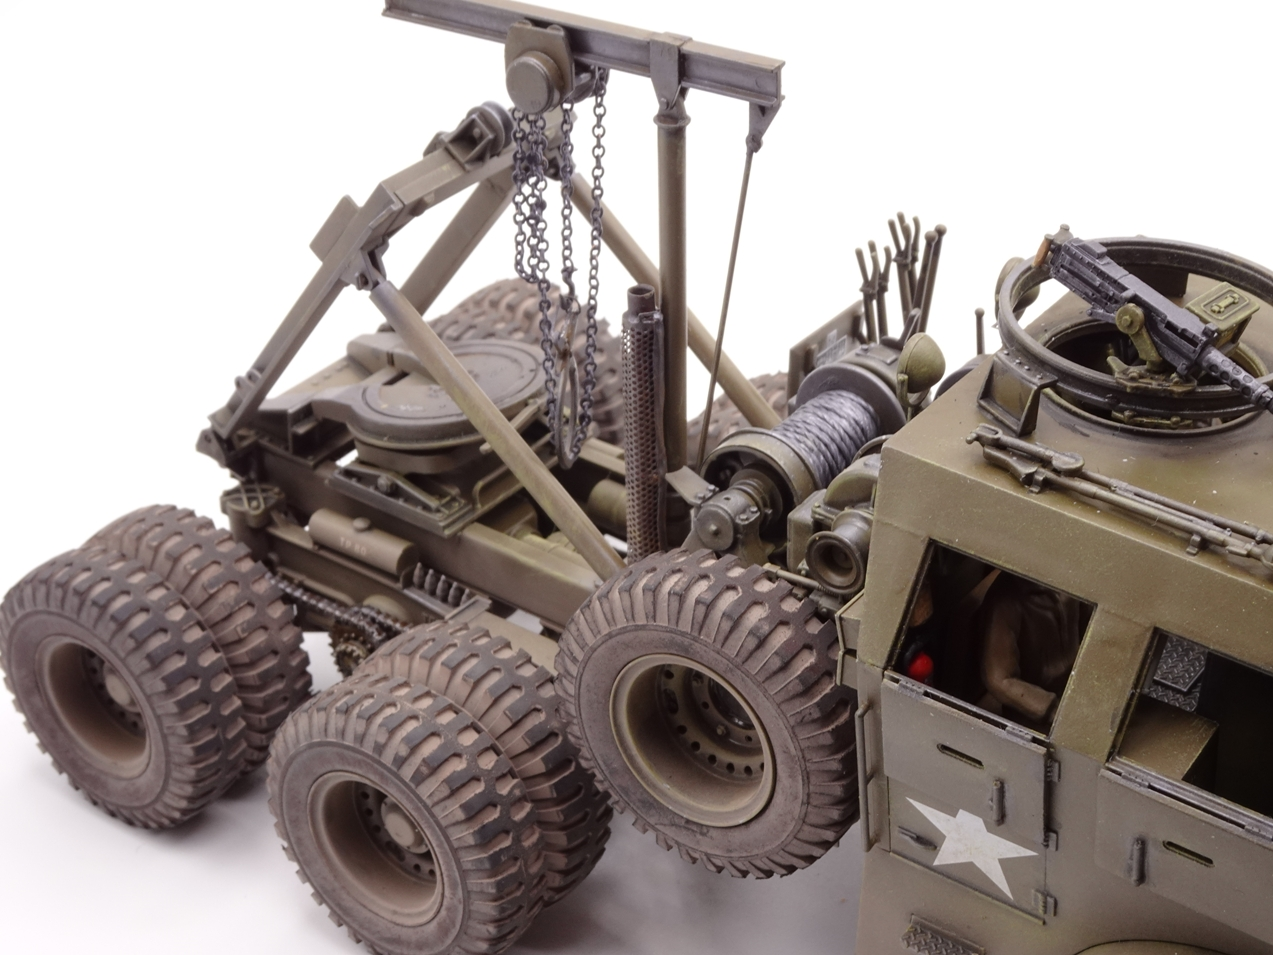 [Tamiya 1/35] M26 Armored tank recovery vehicle réf. 35244 - Page 4 M26-fin-3